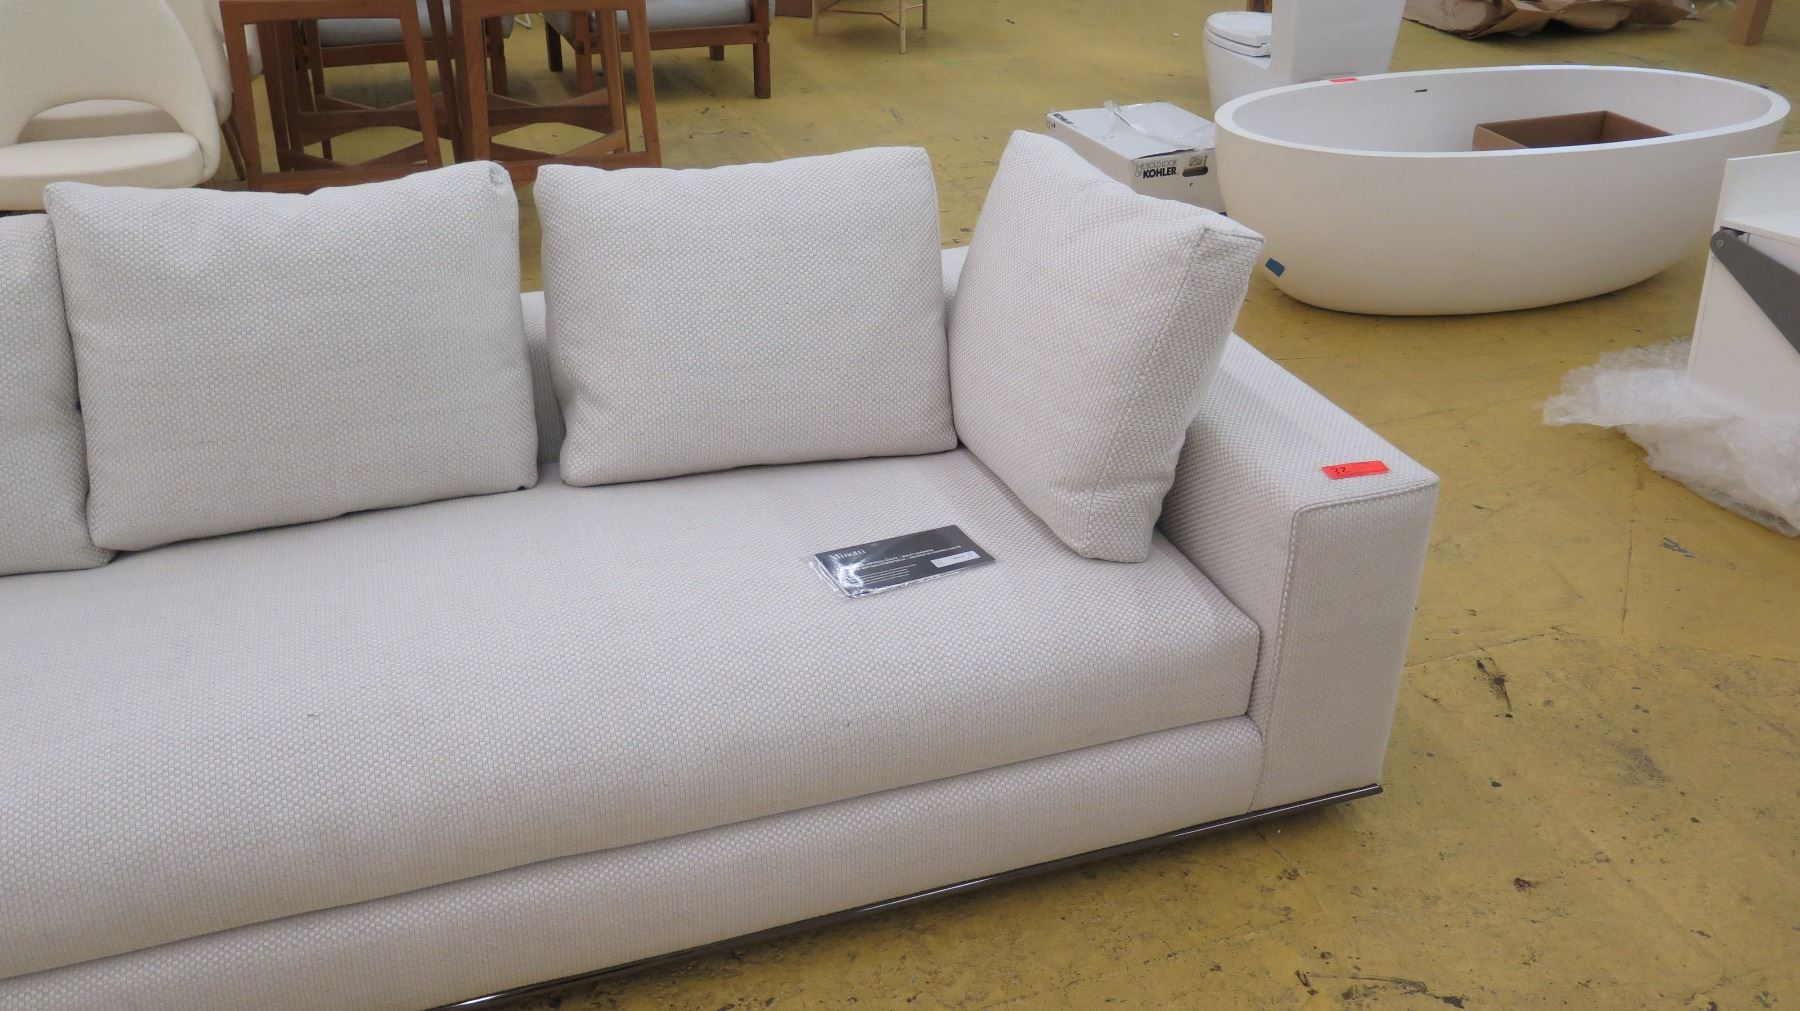 WhiteBeige Woven Minotti Sectional Sofa 2 Sections 143 Combined